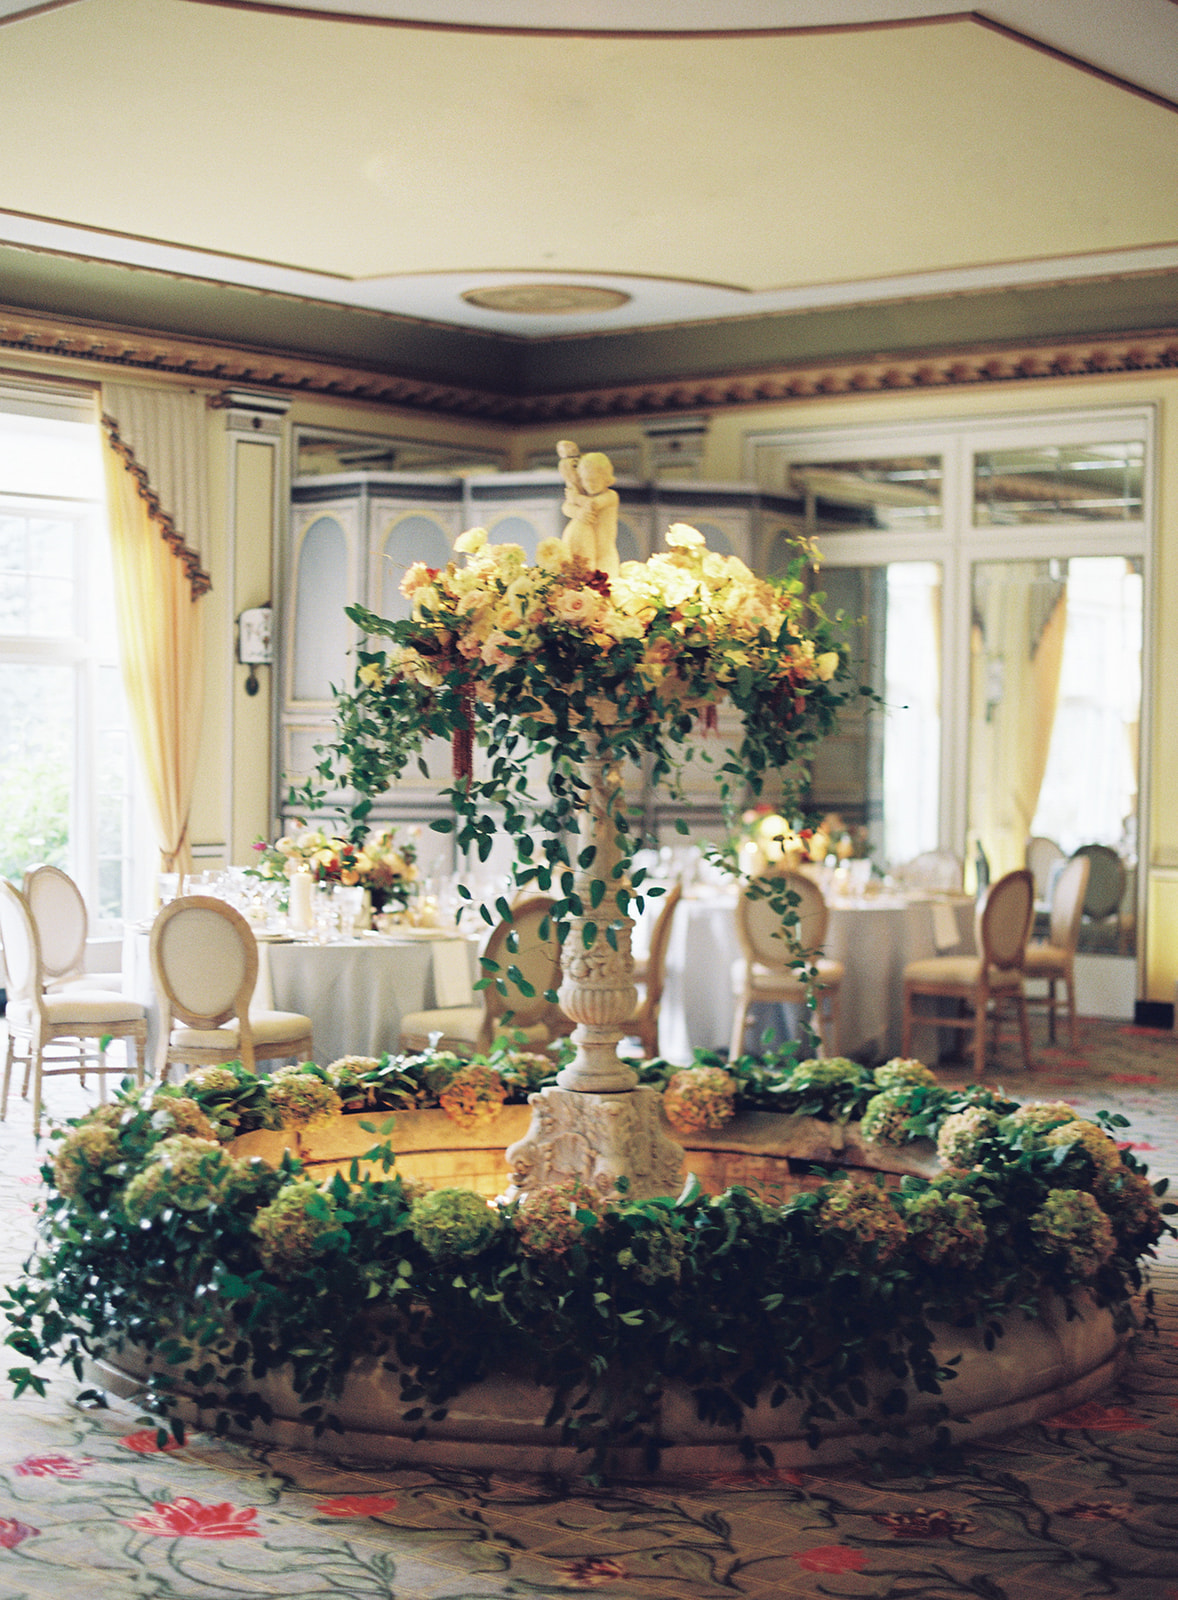 indoor fountain surrounded by round tables with centerpieces